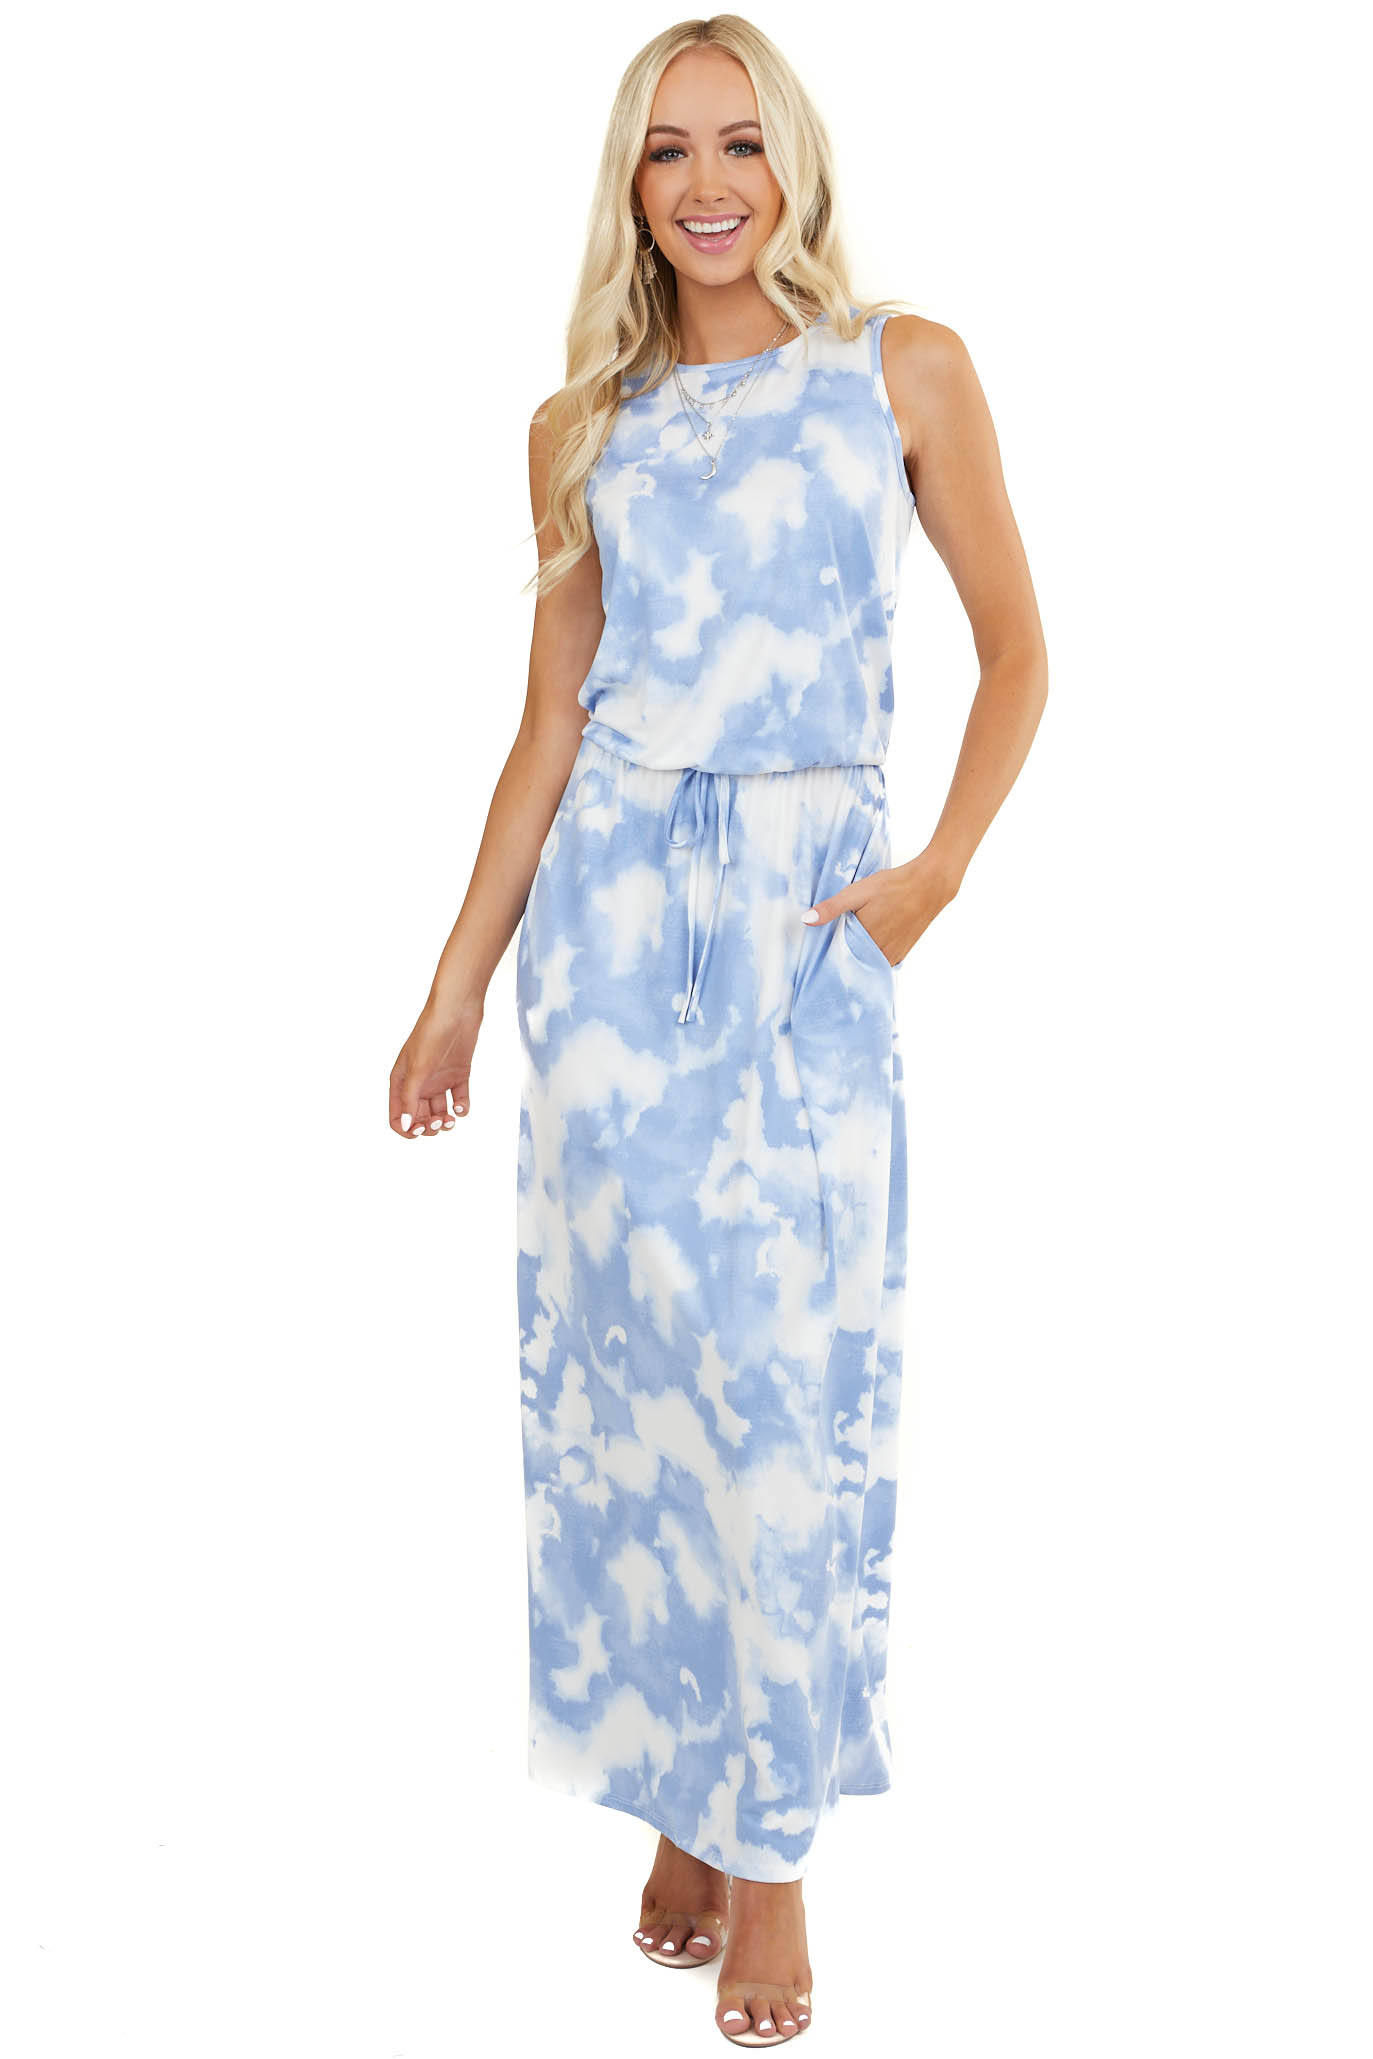 Powder Blue Tie Dye Sleeveless Maxi Dress with Pockets